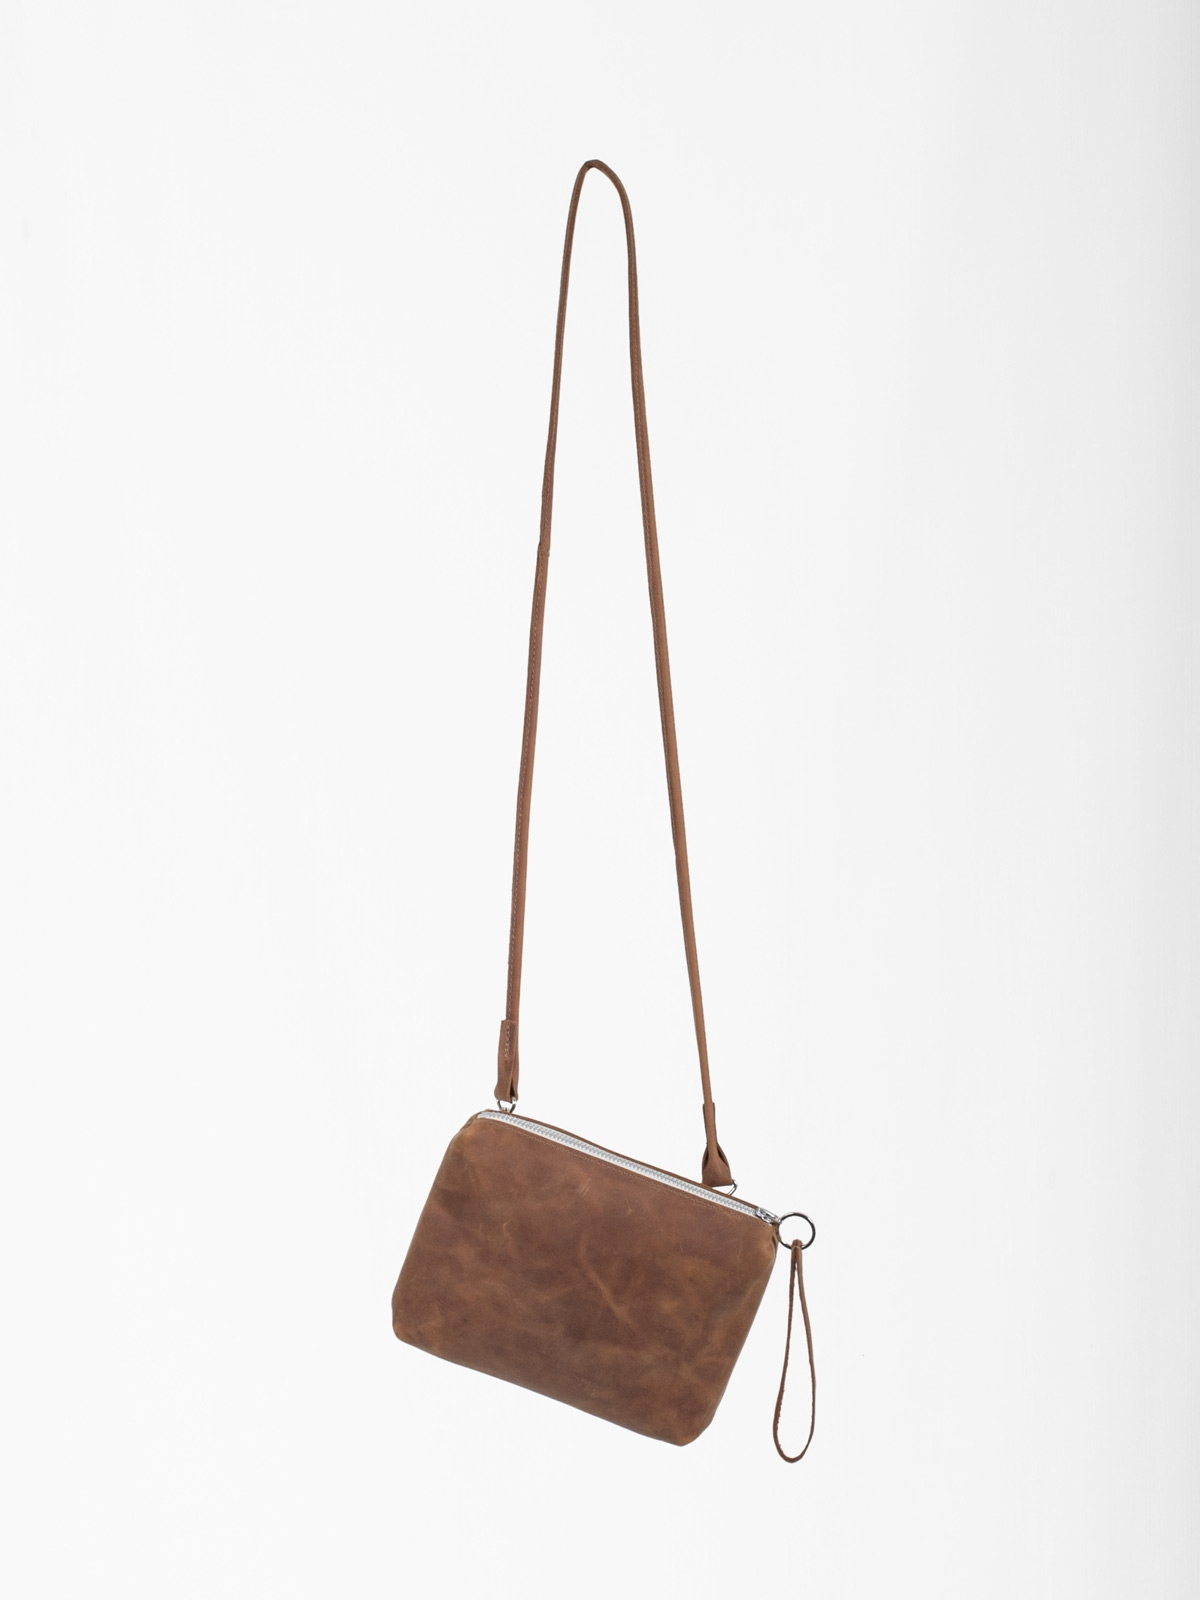 A2 brown leather